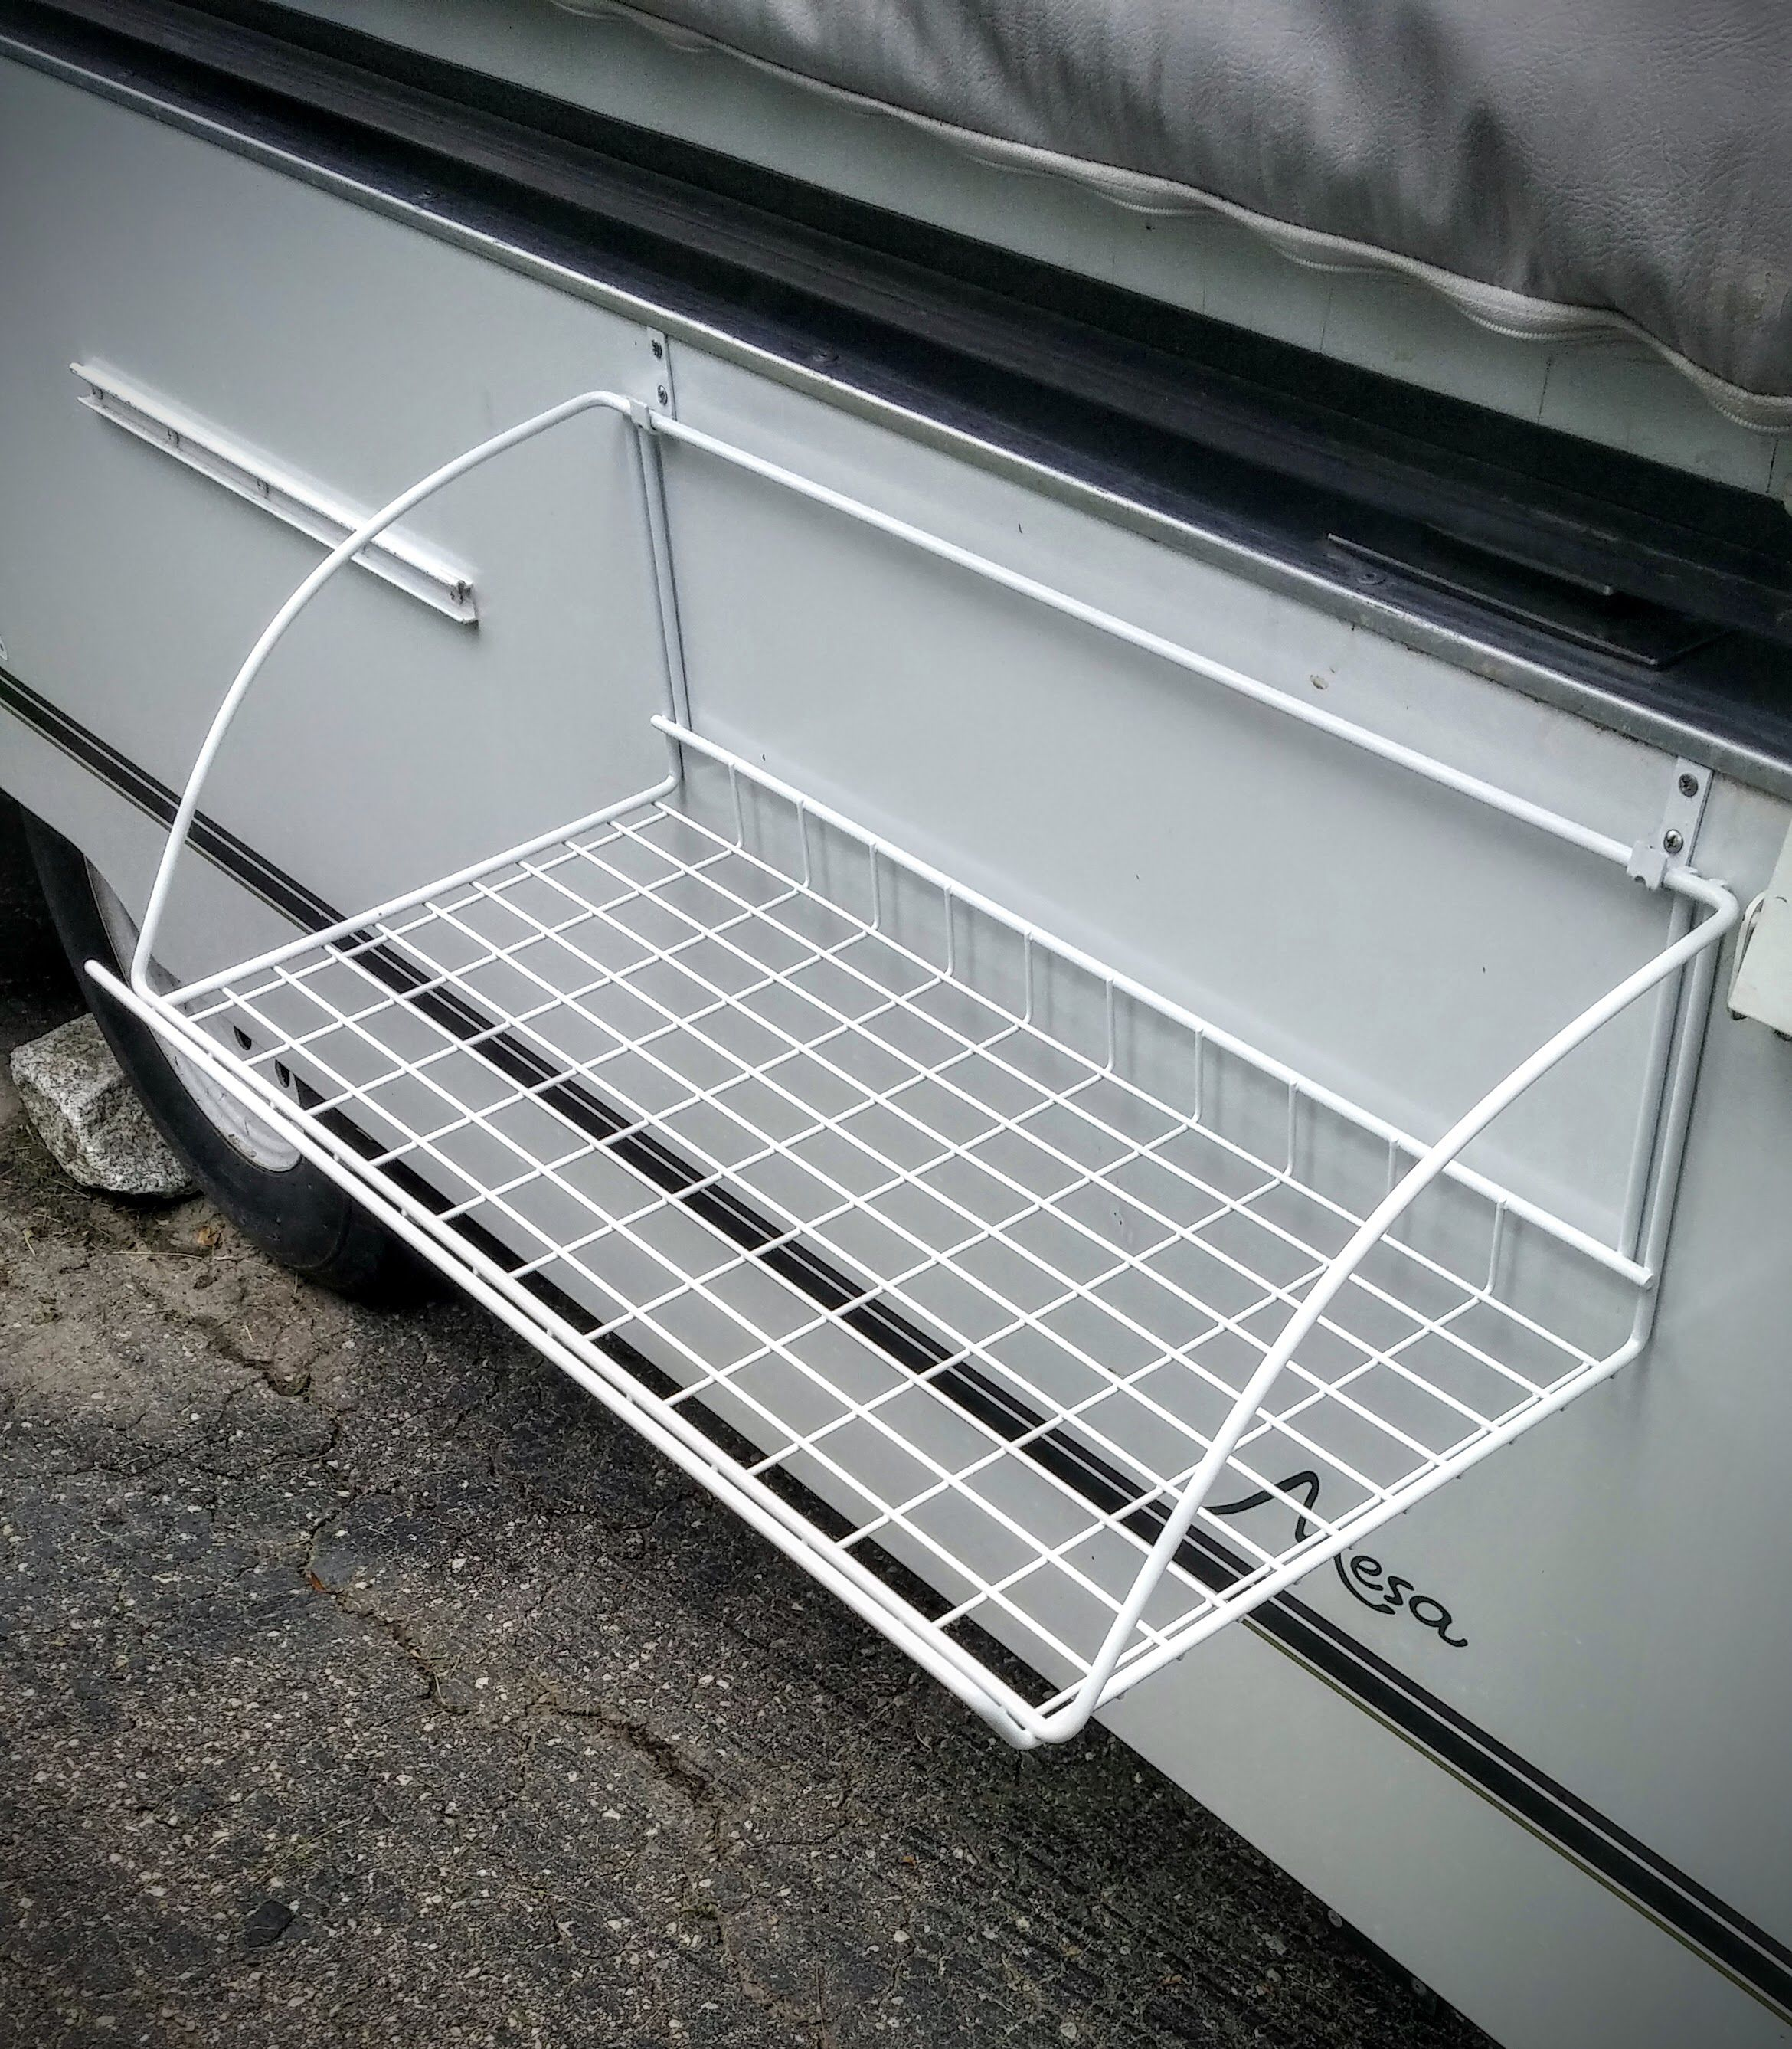 Outdoor Shelf Mod For Popup Trailer Popup Camper Camping Organization Tent Camping